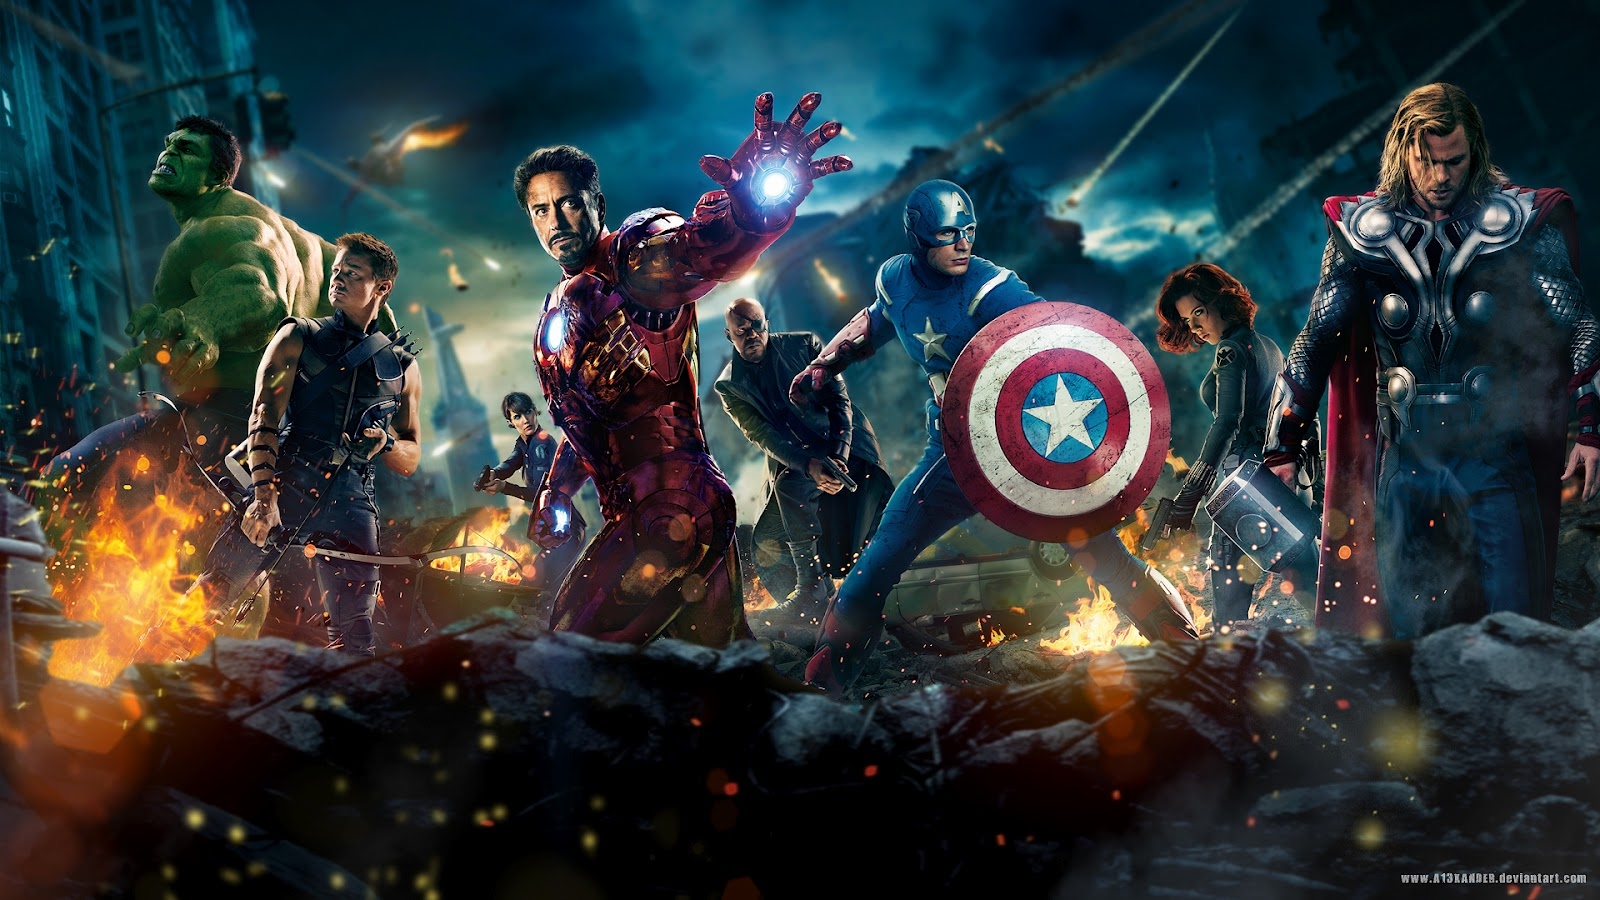 http://4.bp.blogspot.com/-u63vRRQ0wLA/T5wzm53emoI/AAAAAAAAAWQ/patqqr1oZfY/s1600/the_avengers_movie_2012-HD.jpg